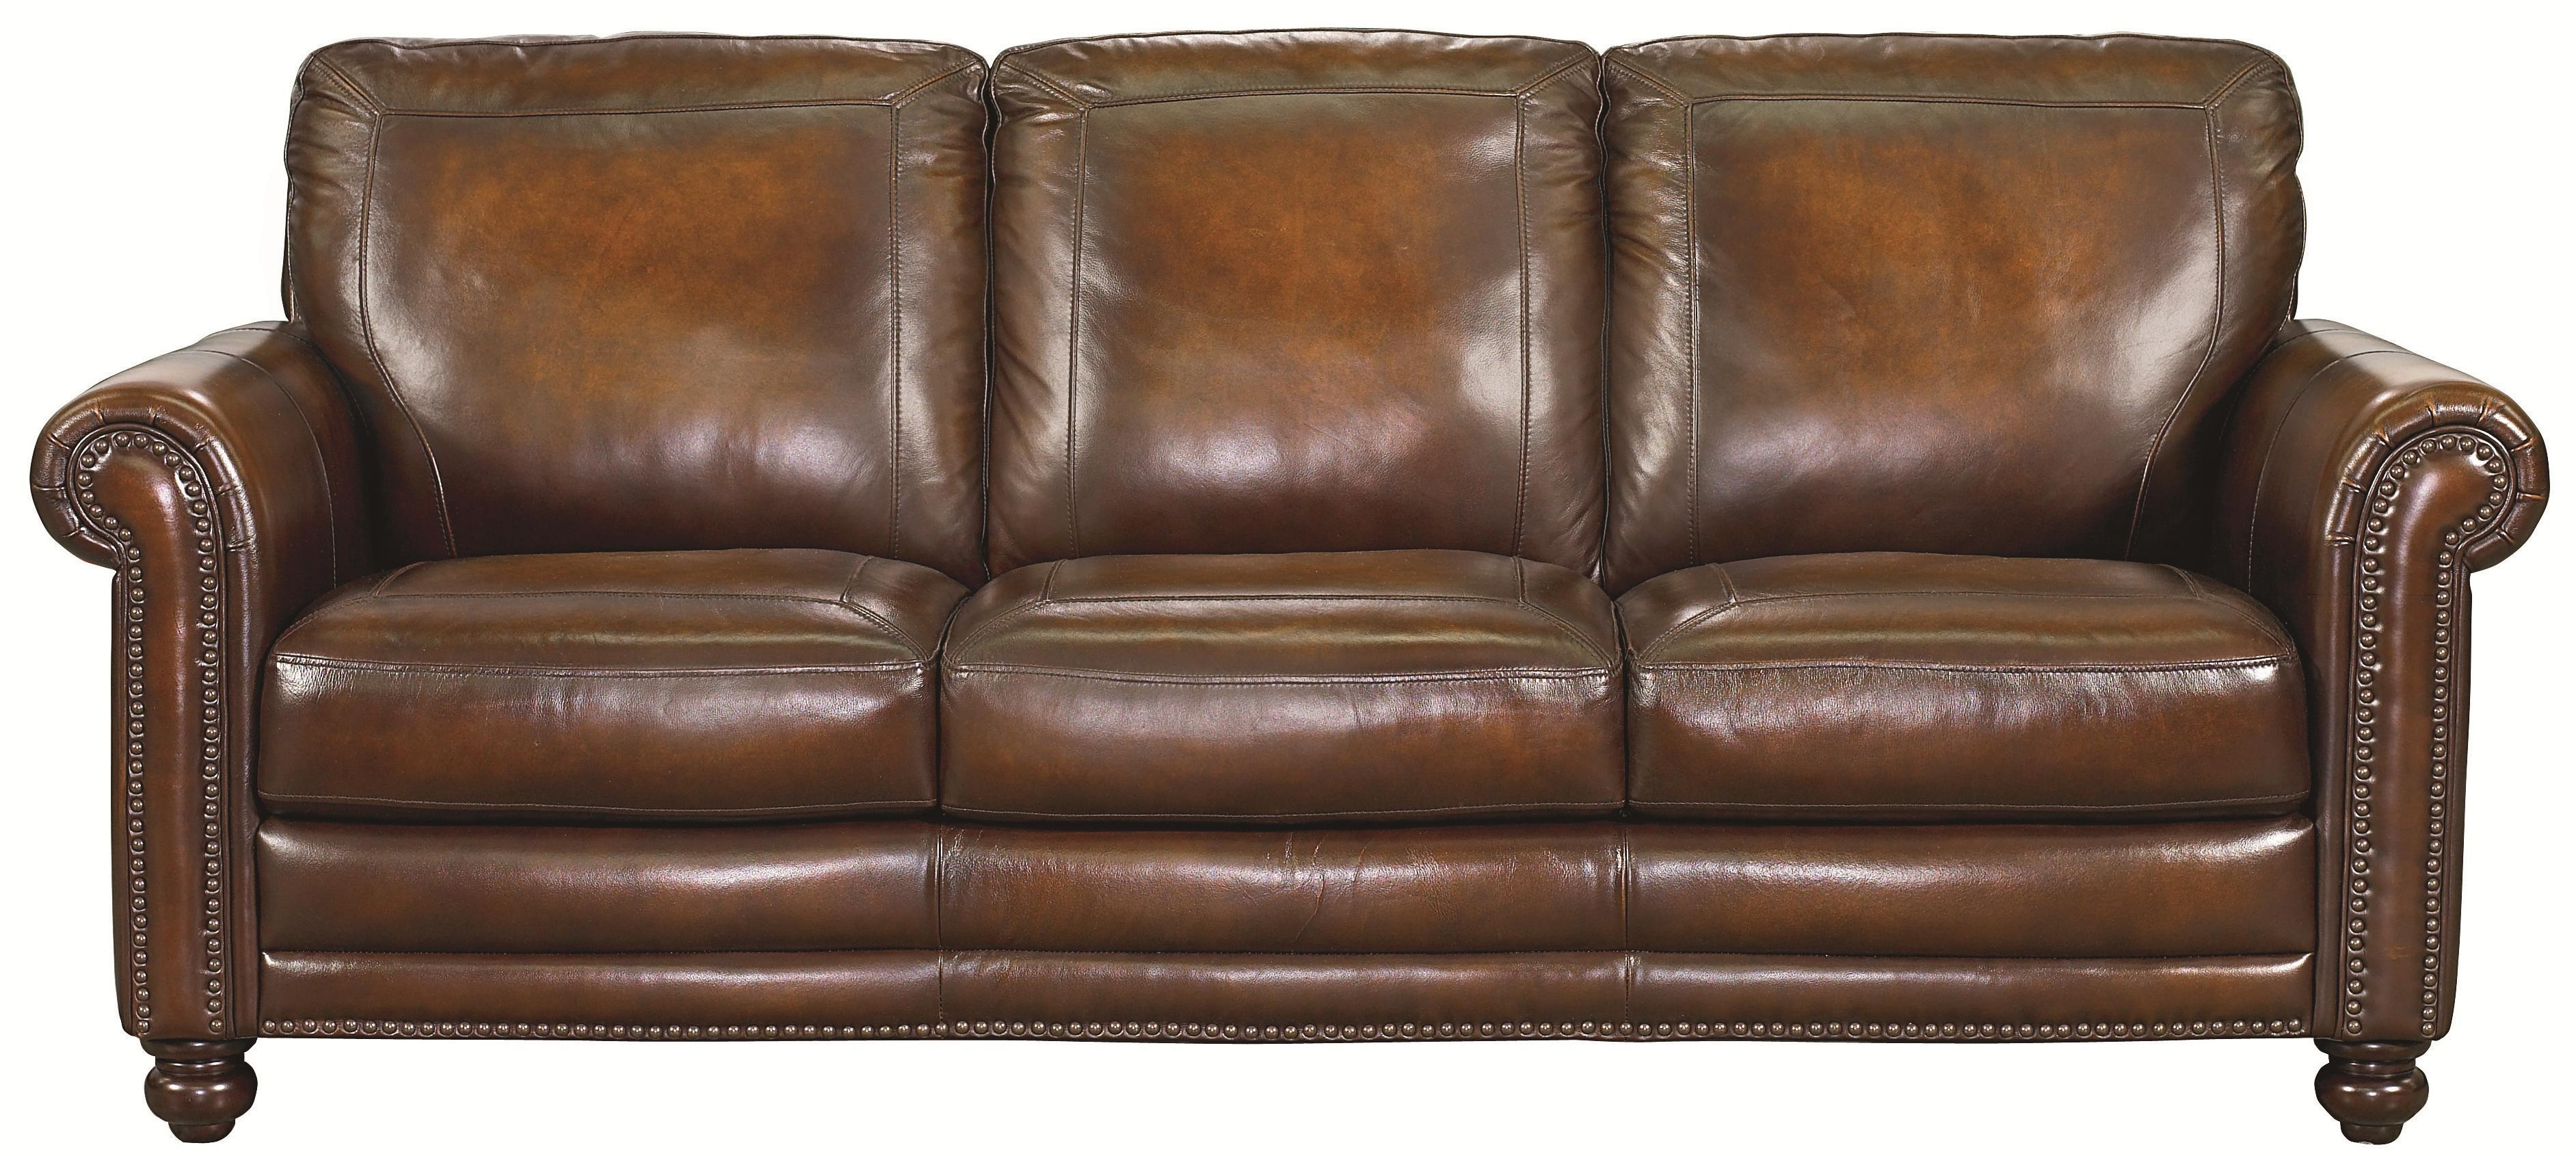 20 choices of brown leather sofas with nailhead trim for Traditional leather furniture